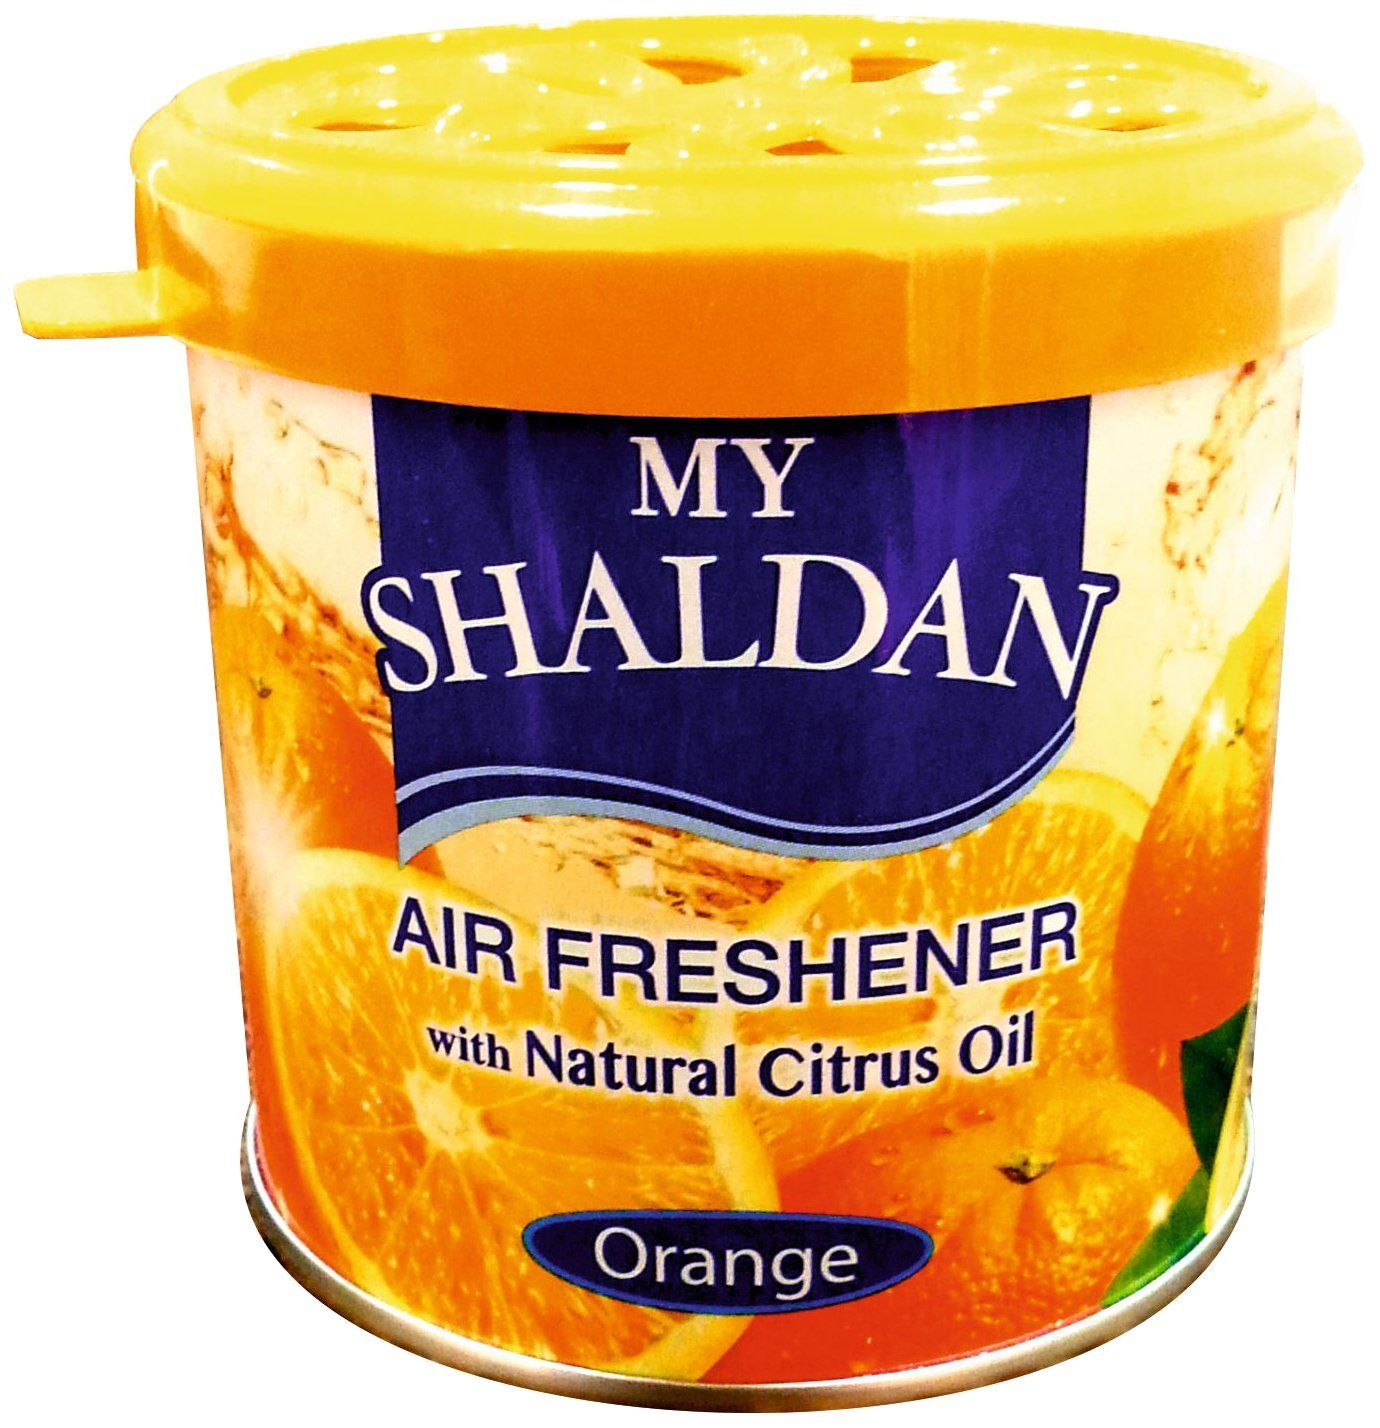 MY SHALDAN ORANGE CAR AIR FRESHNER (80 g)